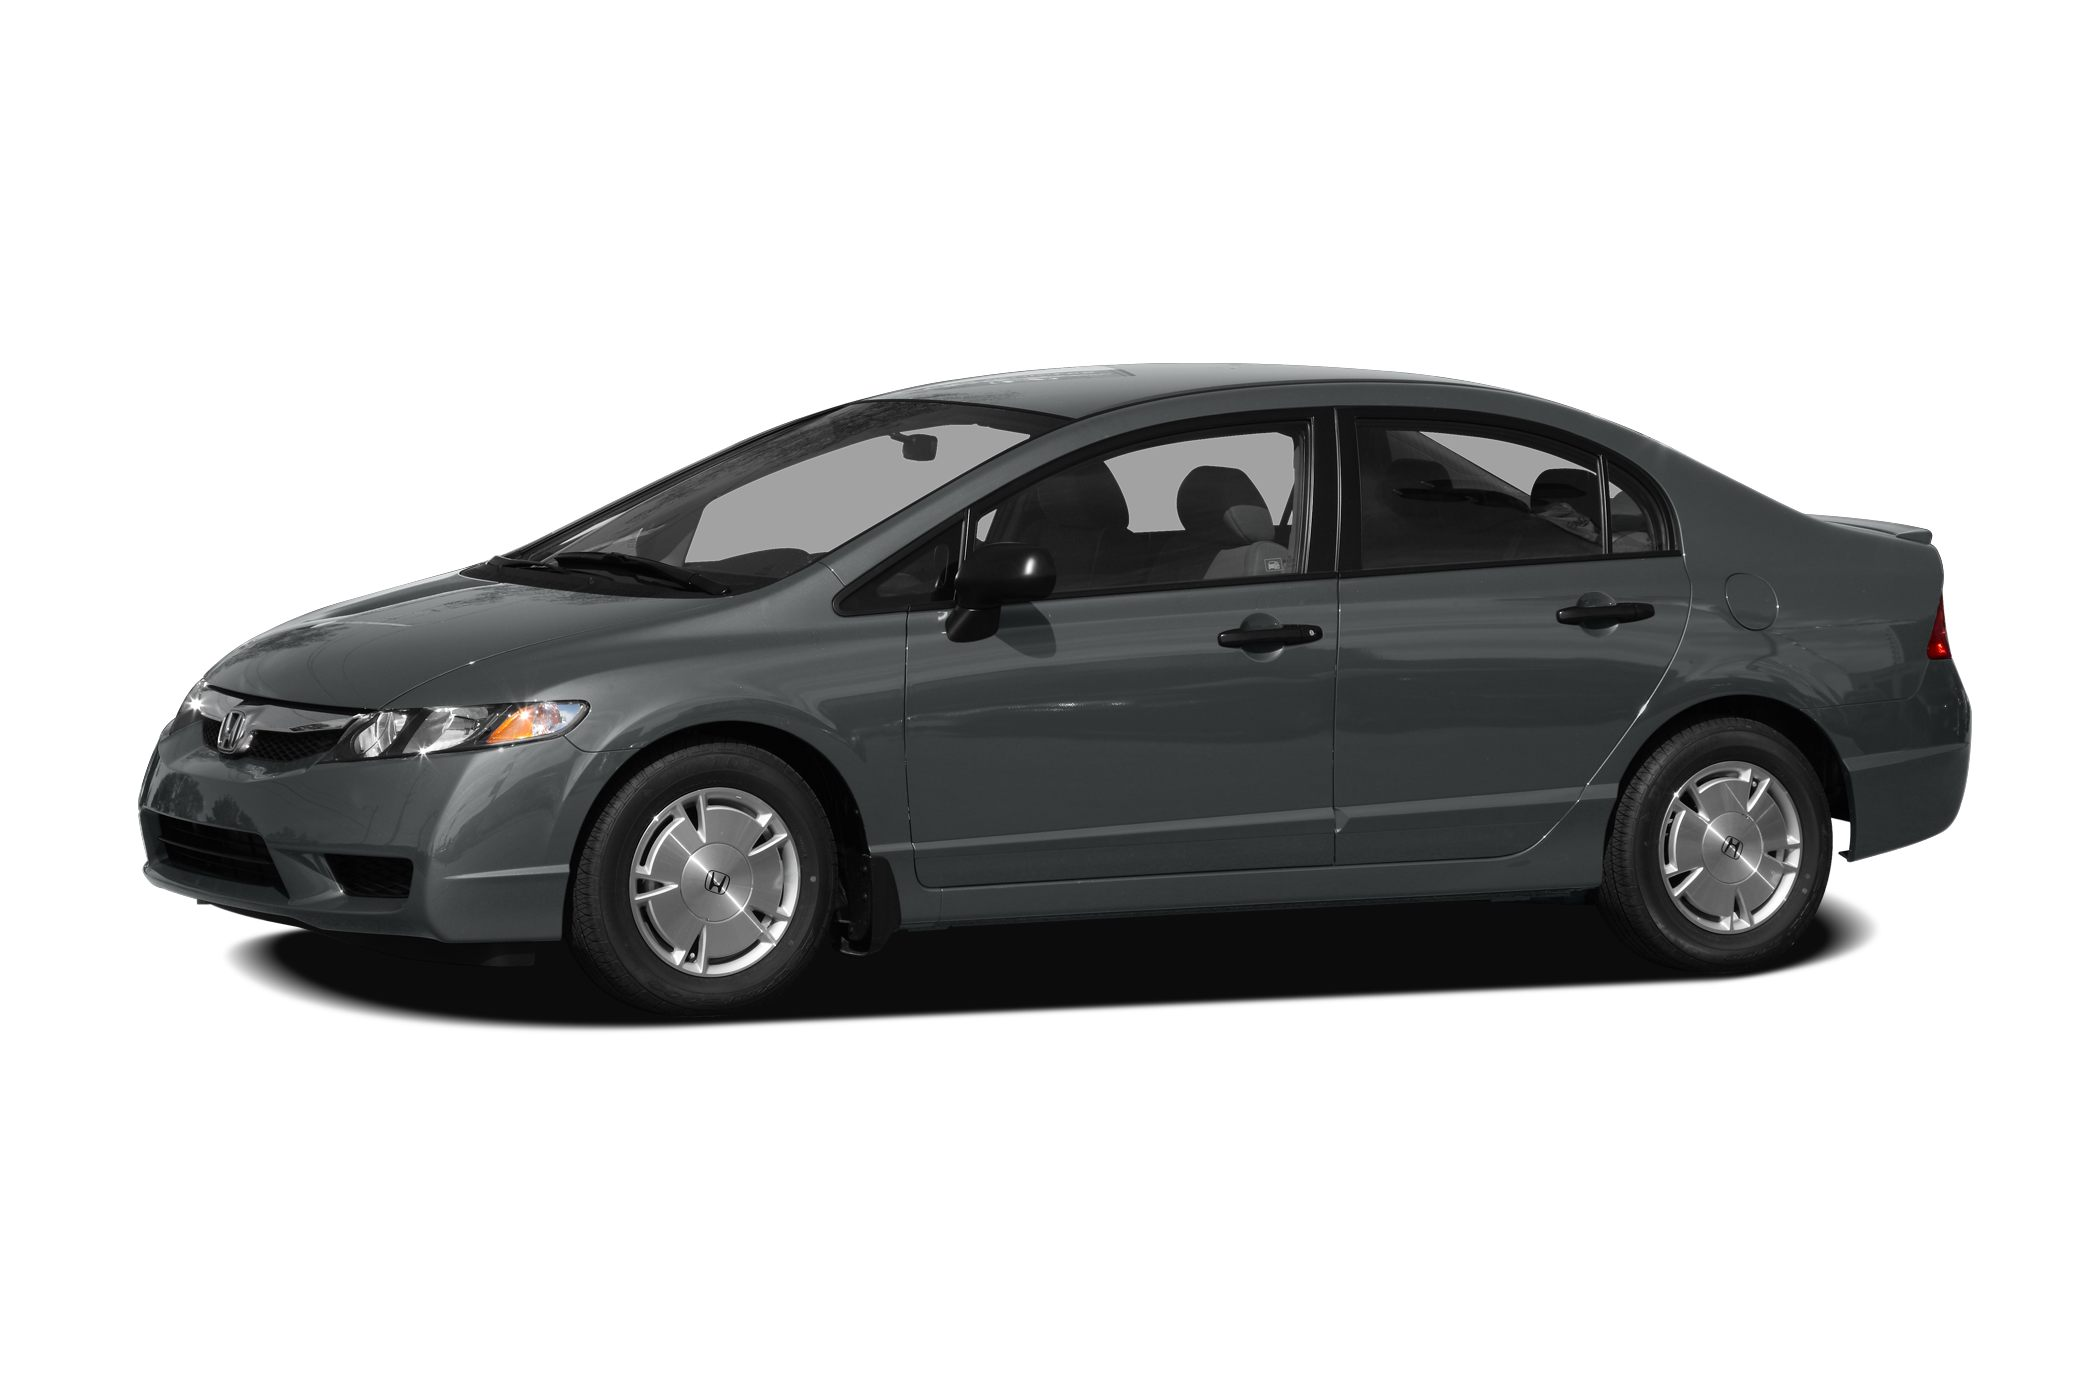 2010 Honda Civic LX CARFAX One Owner Cloth All the right ingredients Come to the experts Westbo